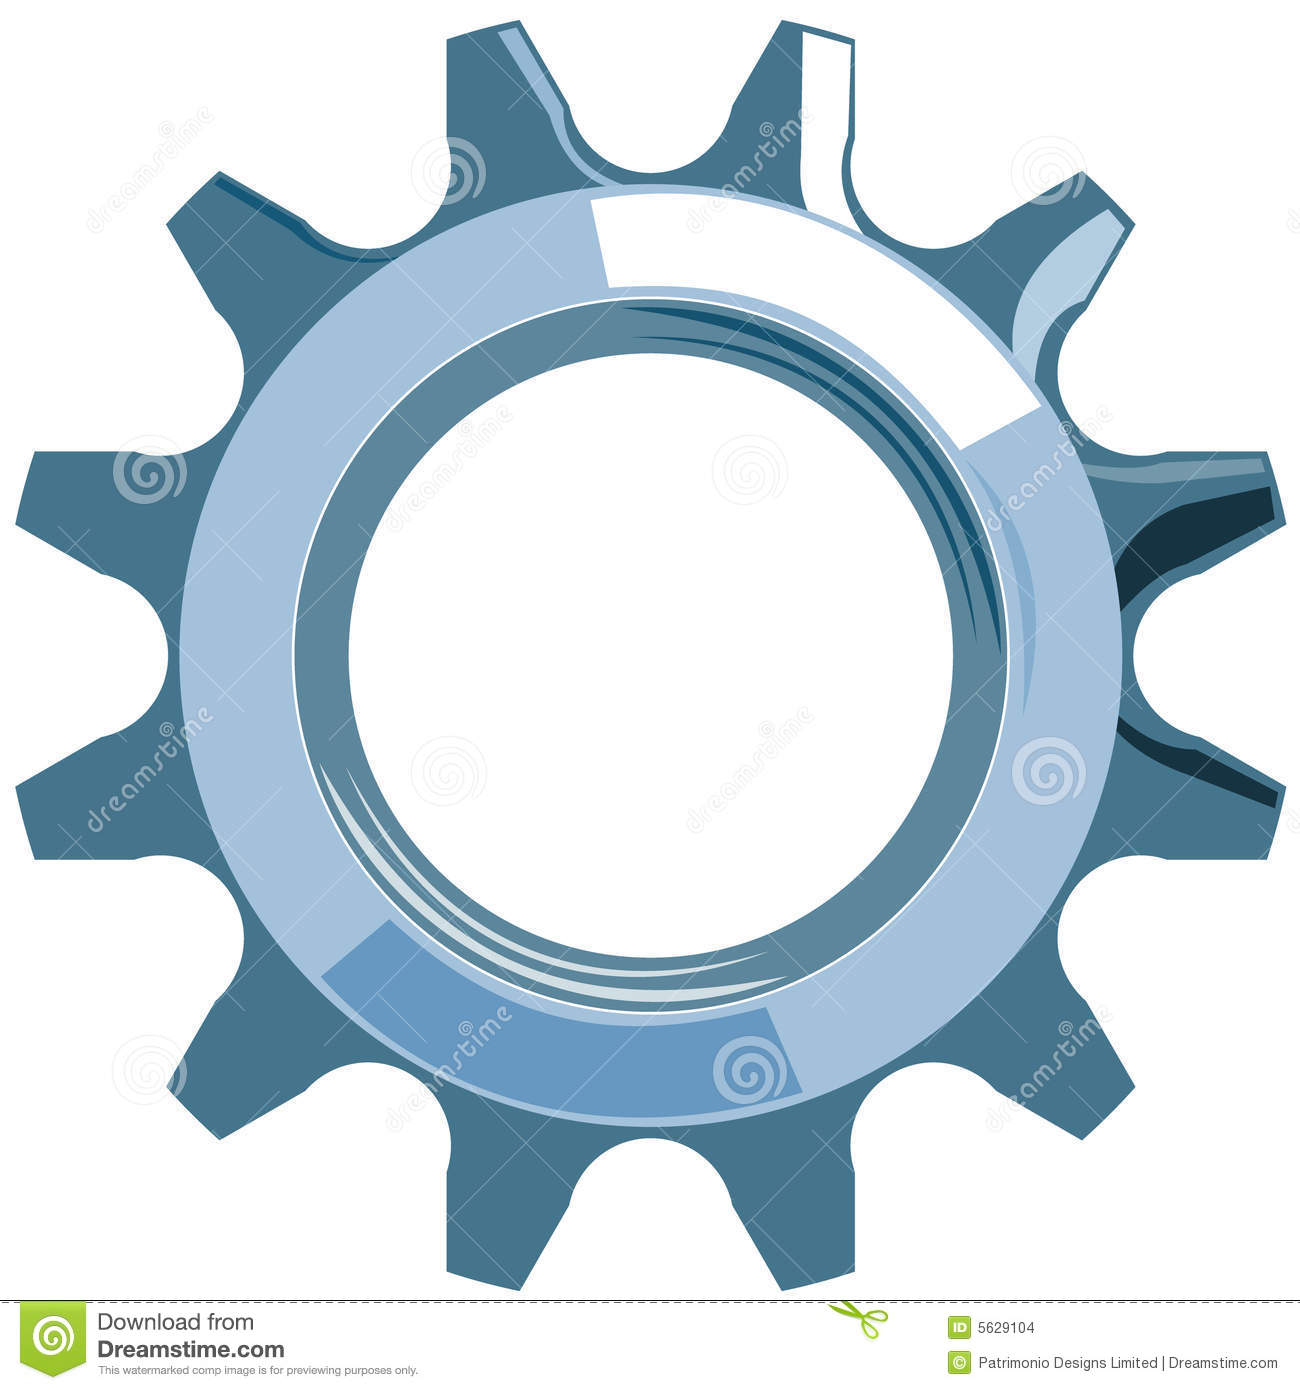 Vector art of cog or gear isolated on white background.